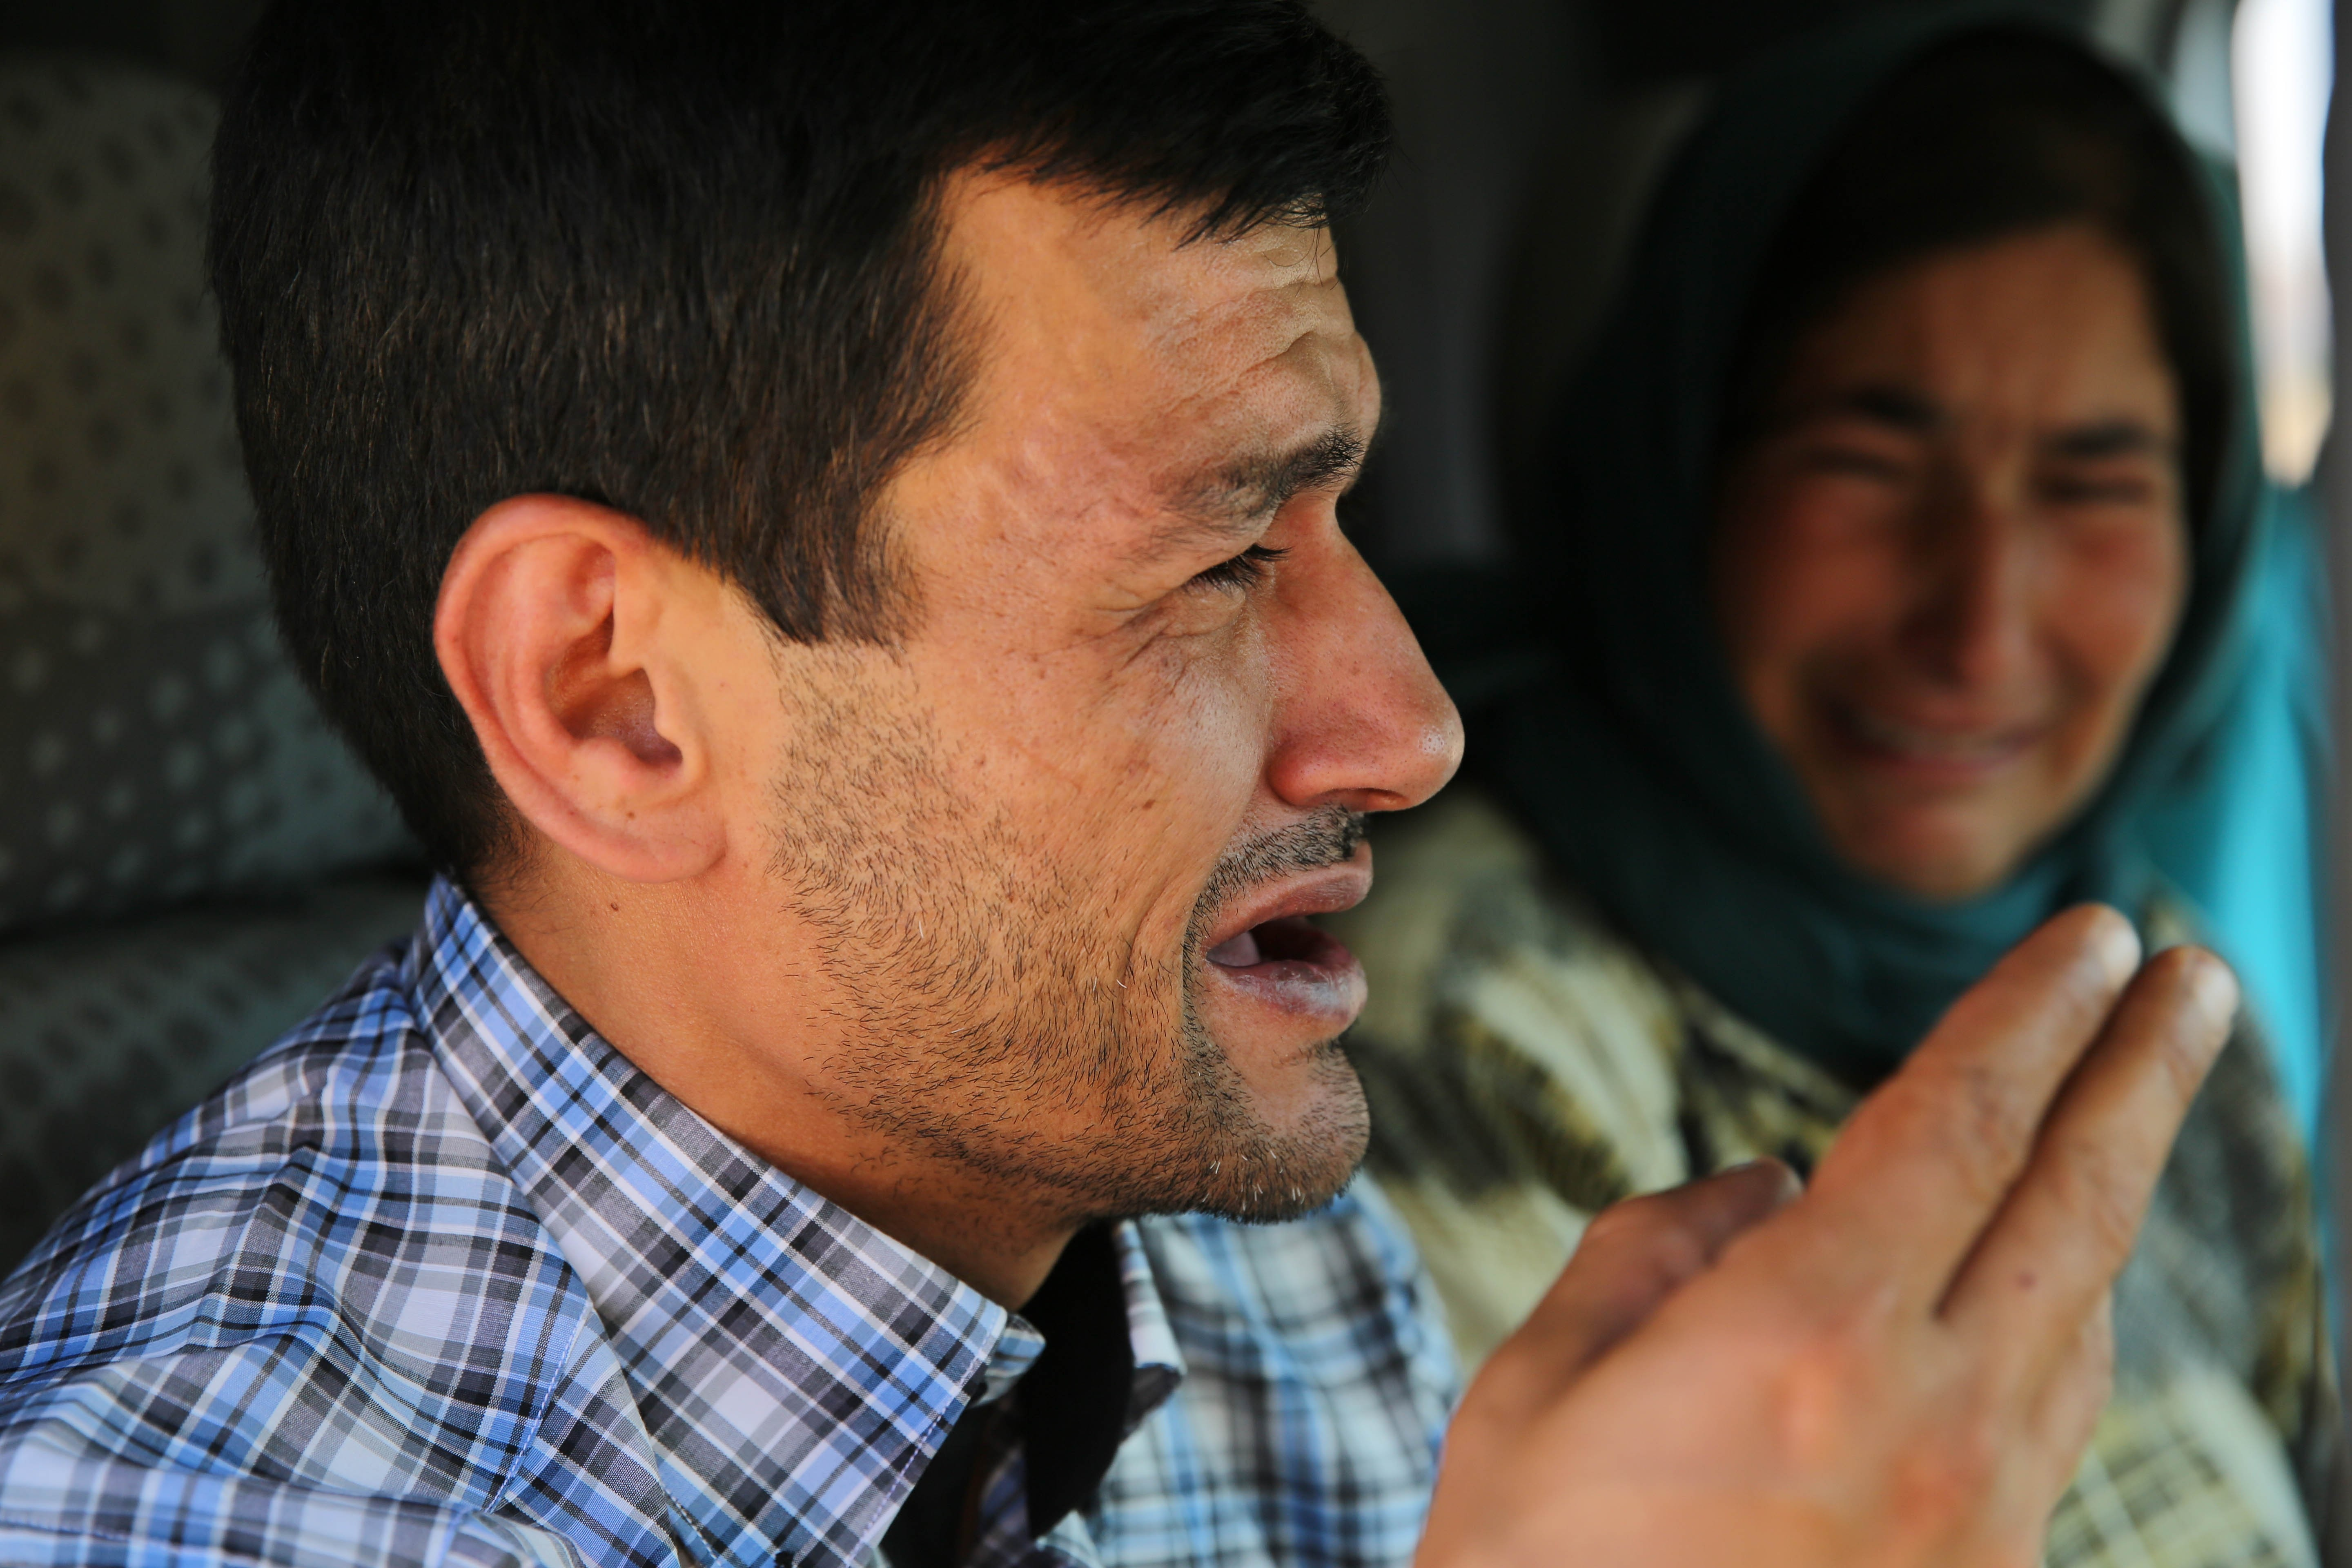 Abdullah Kurdi, father of Syrian children Aylan, 2, his brother Galip, 3, and husband of Zahin Kurdi, 27, who drowned after their boat sank en route to the Greek islands in the Aegean Sea, cries on his way to the Syrian border town of Kobani (Ayn al-Arab) to hold funeral of his family on September 4, 2015. The 12 people, including eight children, drowned after their boat sank en route to the Greek islands in the Aegean Sea.